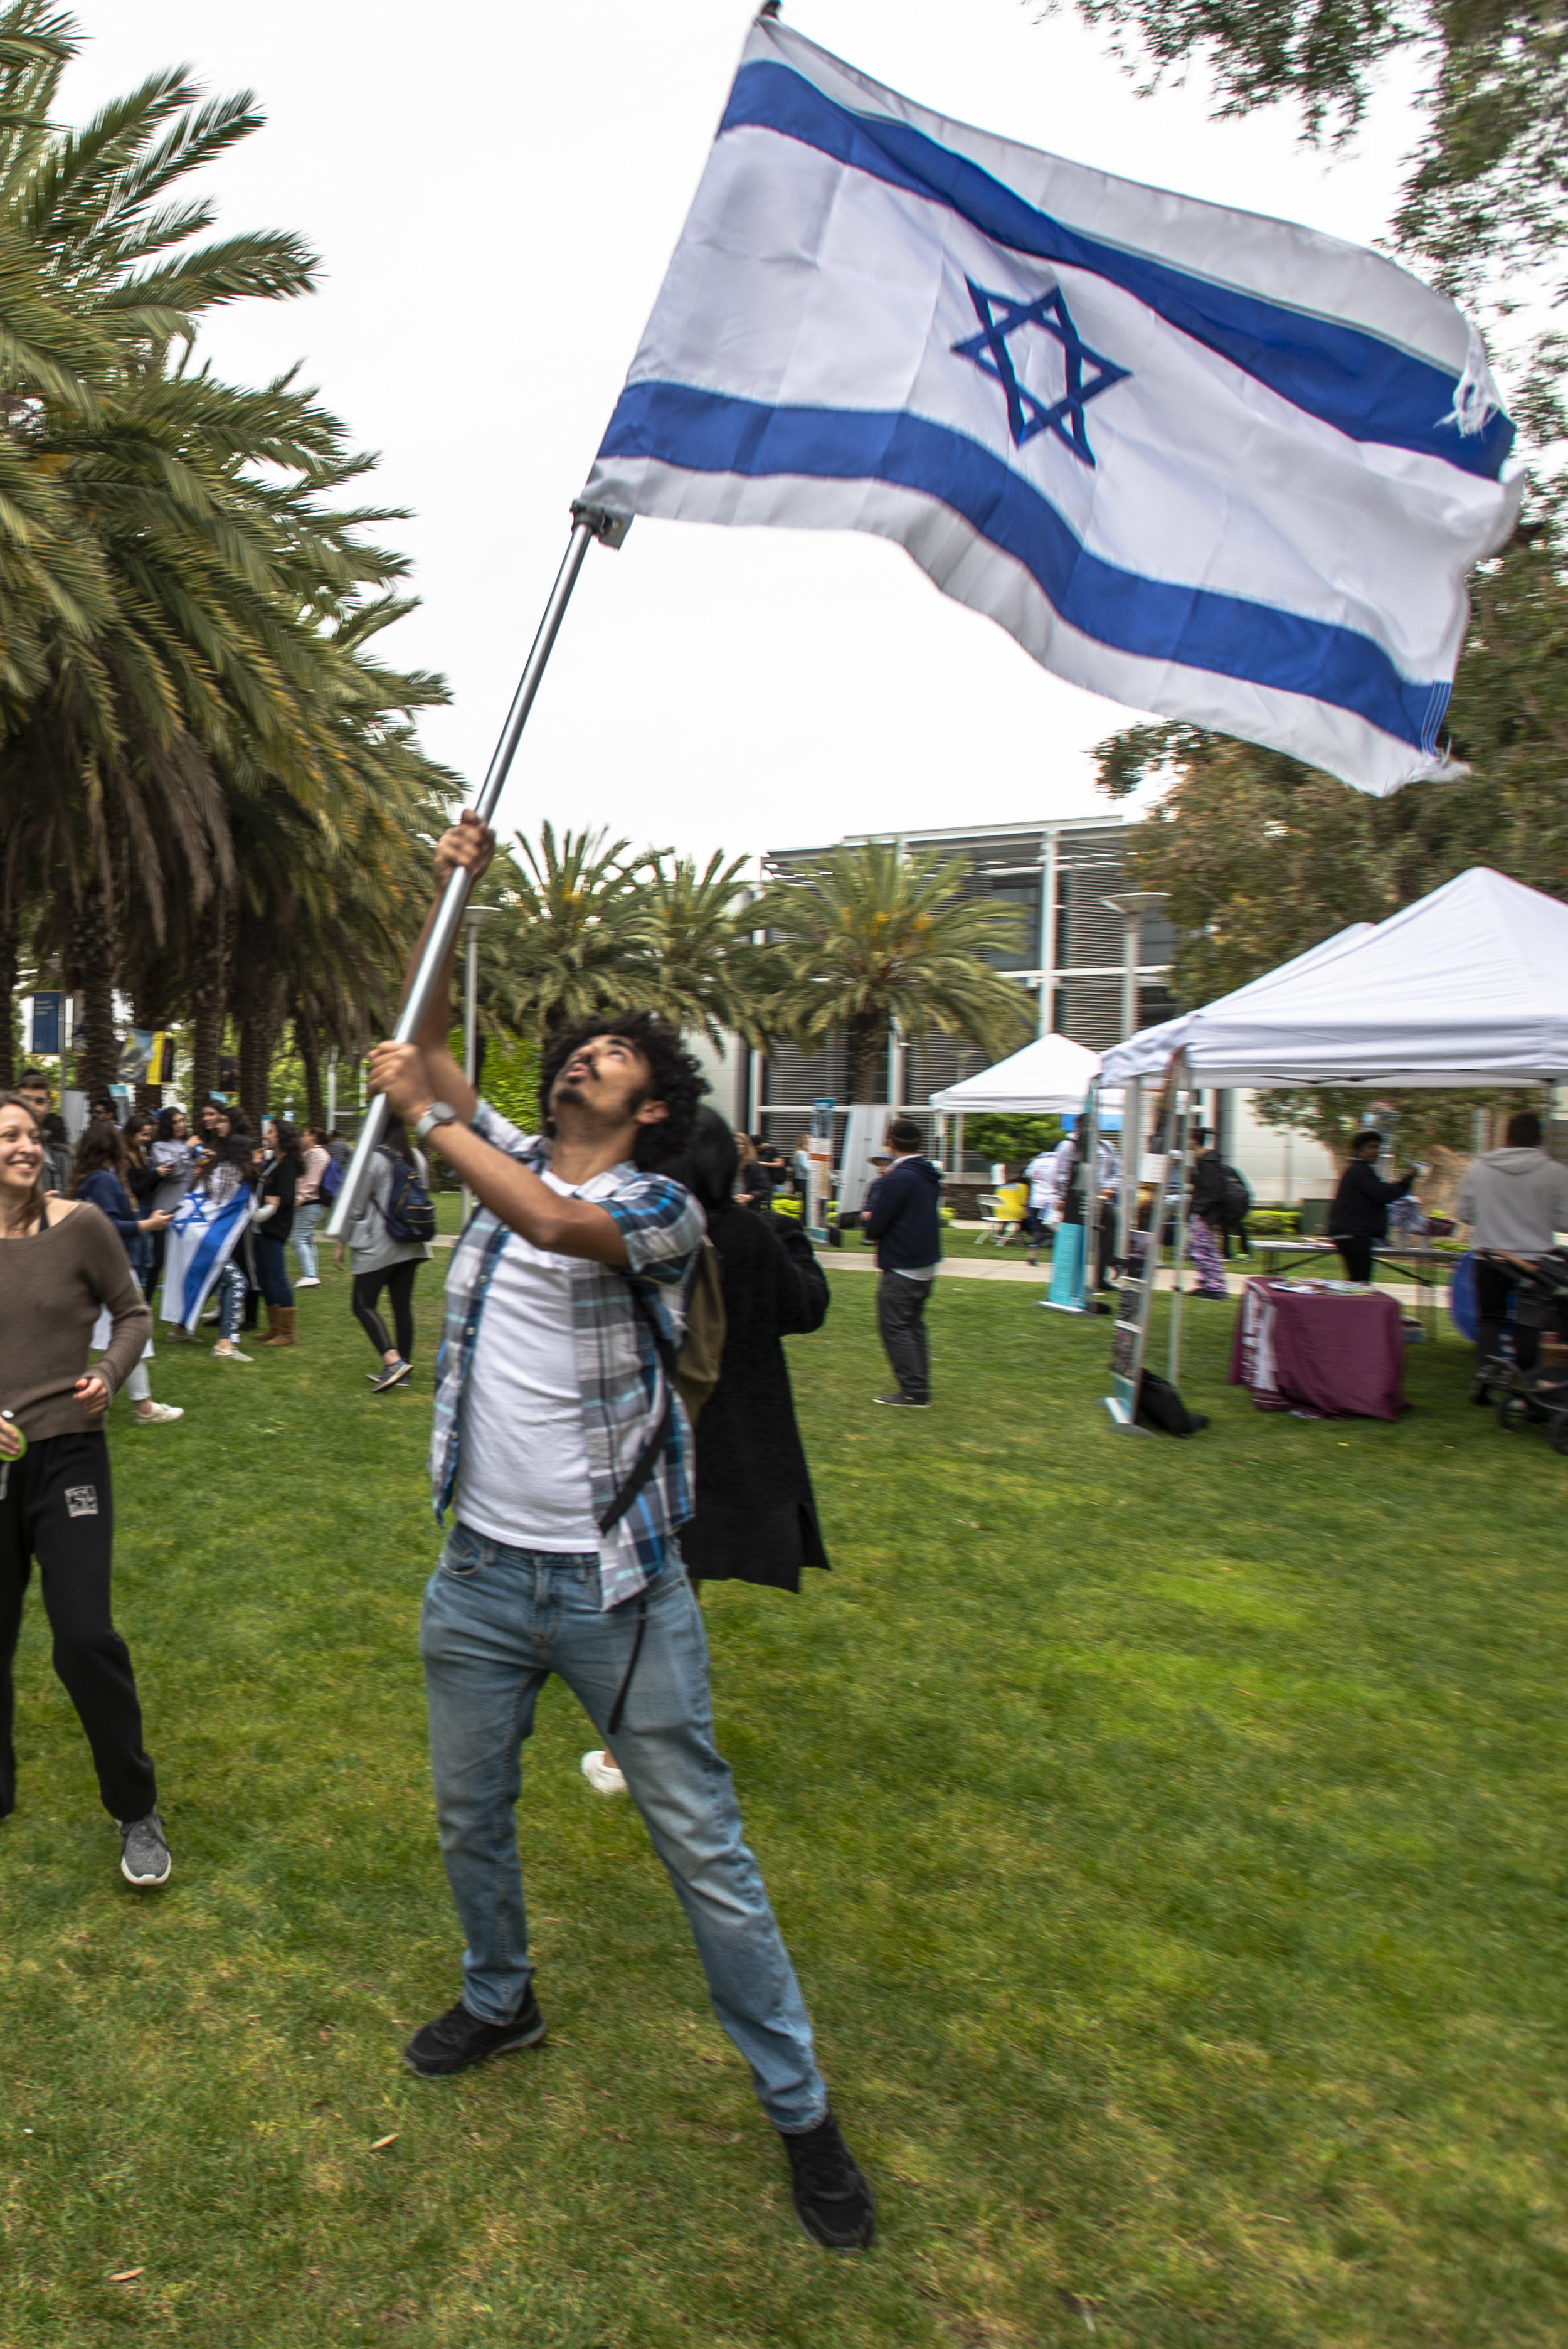 Former Israel Defense Force solider and current Santa Monica College student, Ron waves an Israeli flag to celebrate Israel's Independence Day on Thursday, May 9, 2019.